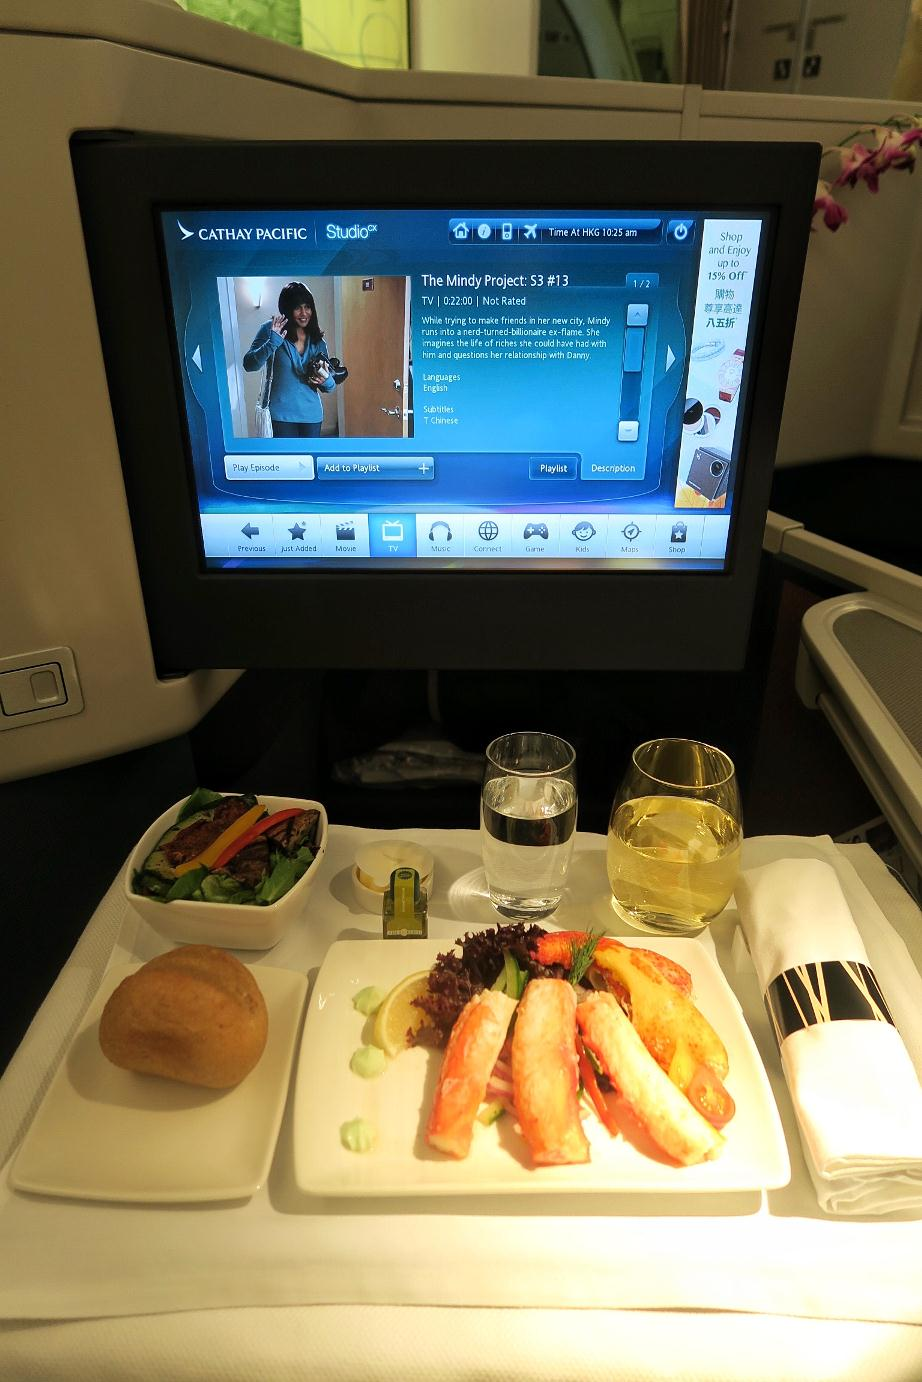 Cathay Pacific Boeing Delivery Flight Meals Inflight Entertainment